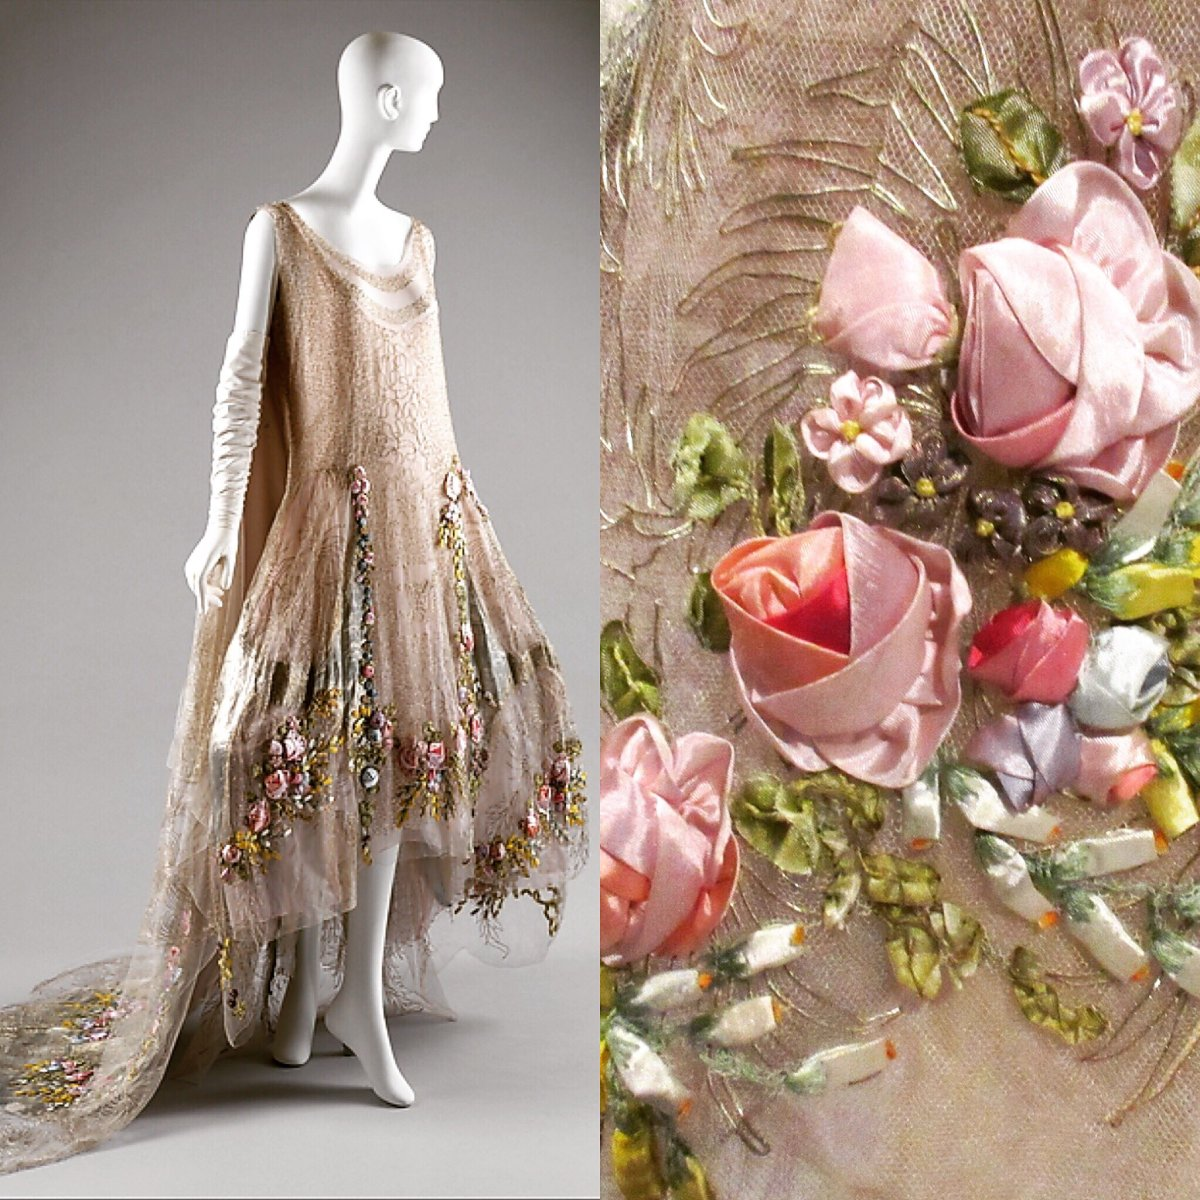 Whereas petticoats and inner structures of 18th-century clothing were solid and more or less rigid, the Boué Soeurs dress, despite the resemblance in robe-de-style silhouette, reveals its 20th-century disposition in its lingerie-like revealing lightness - like the merest trellis for an arbor of silk flowers. A penchant for sweet, three-dimensional buds is, of course, shared by the rococo and the Boué Soeurs.